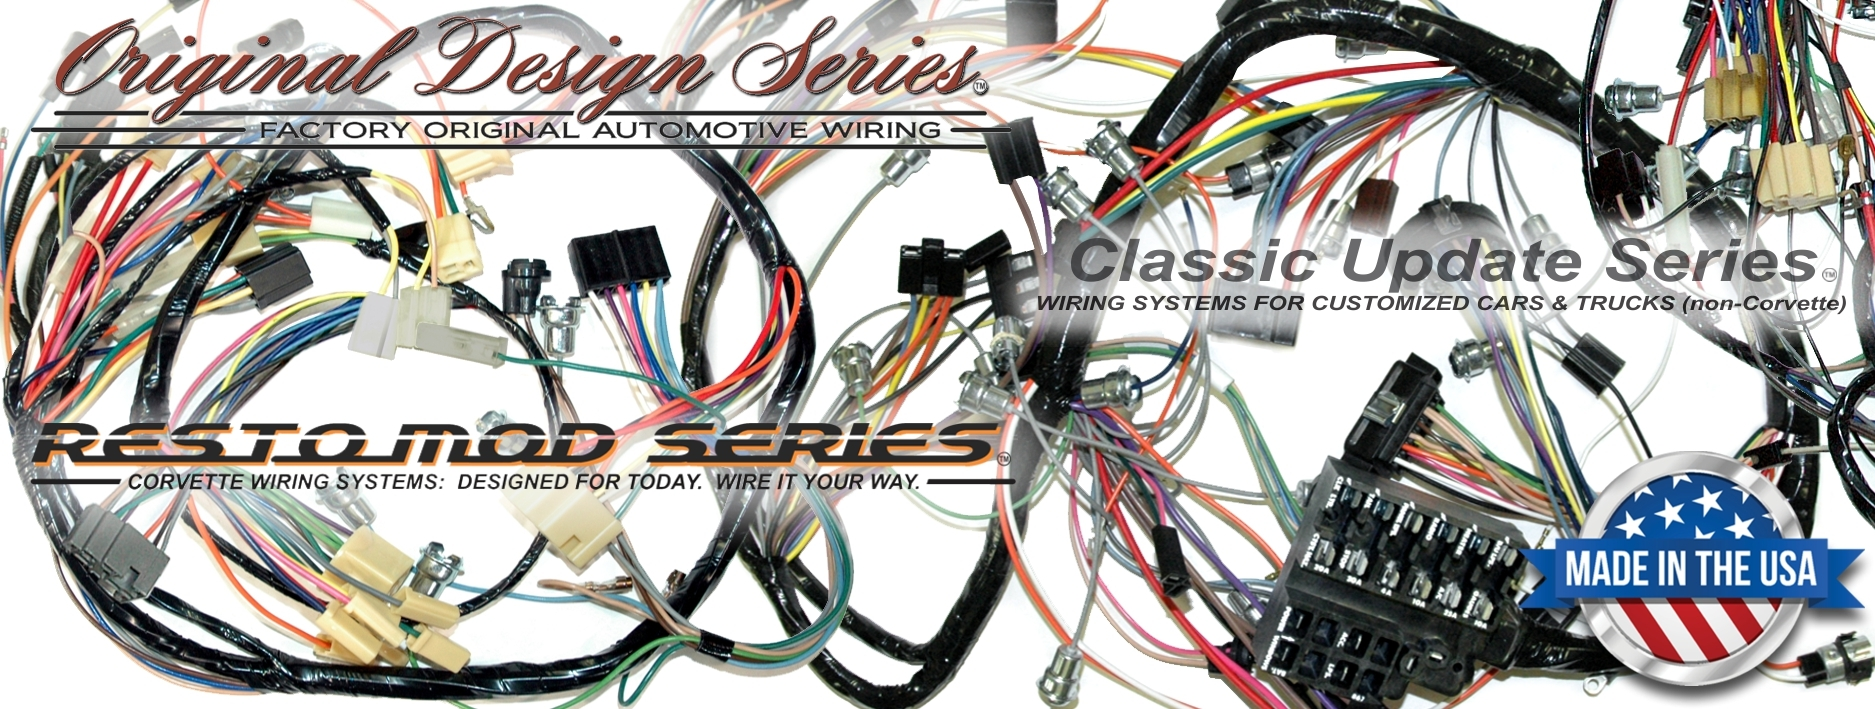 Exact OEM Reproduction Wiring Harnesses and RestoMod Wiring Systems on harness storage, harness assembly, harness hardware,